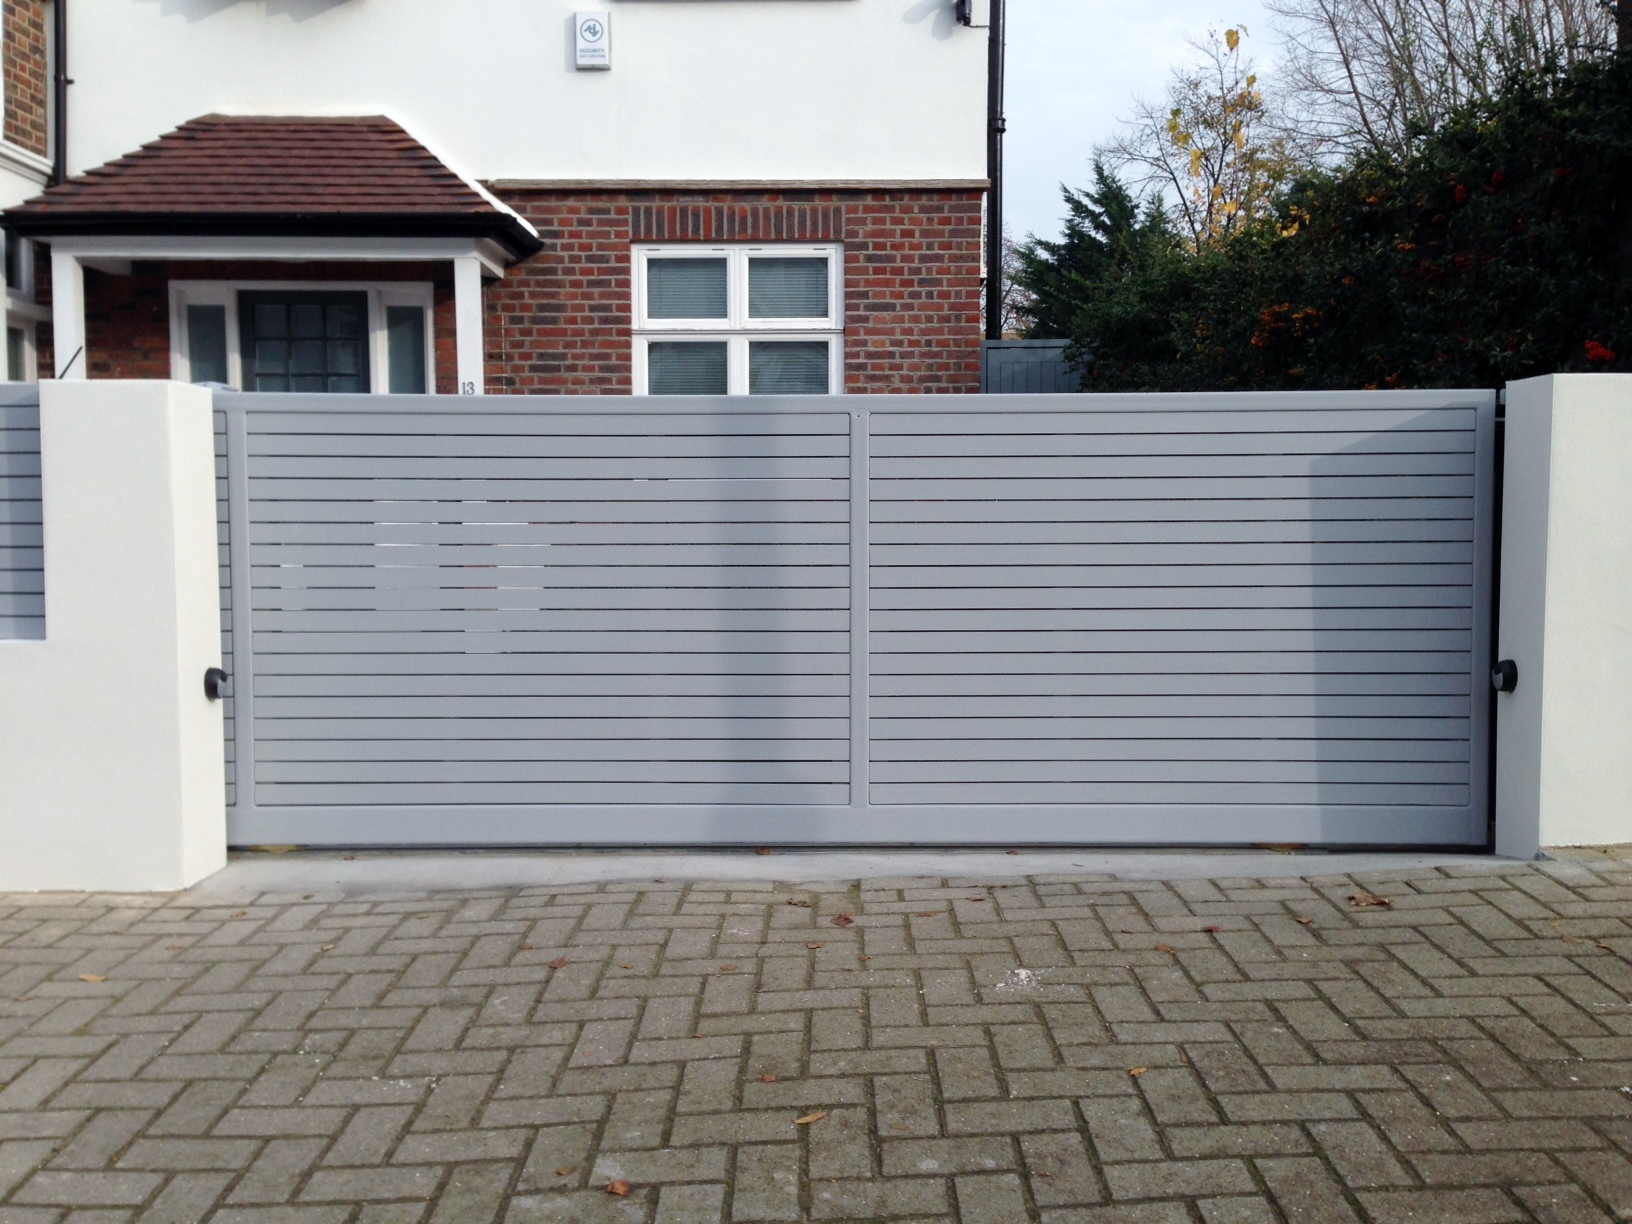 front boundary wall screen automated electronic gate installation grey wooden fence bike store modern garden design balham clapham london (19)